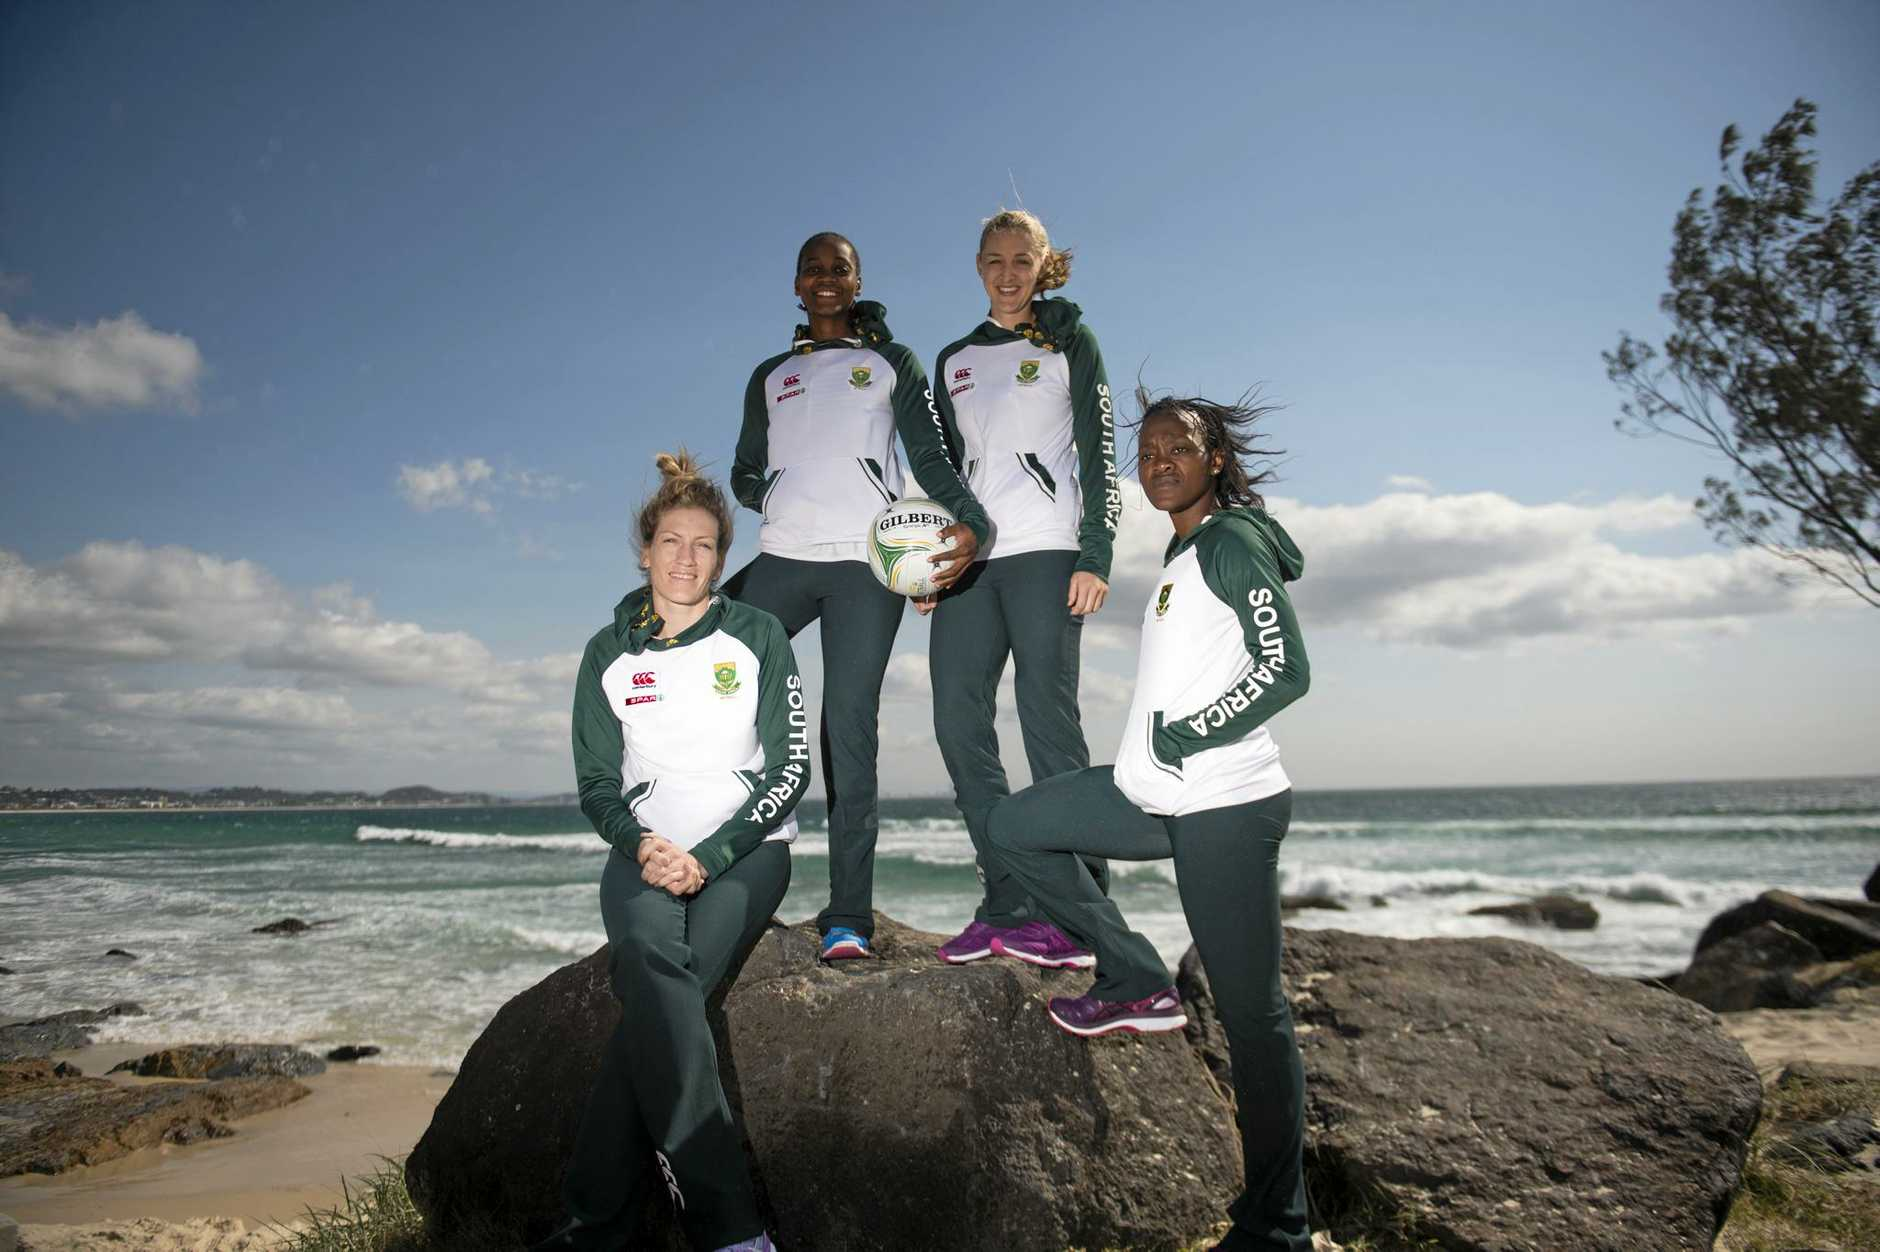 Karla Mostert, Precious Mthembu, Erin Burger and Bongiwe Msomi brave the wind at Coolangatta on Tuesday